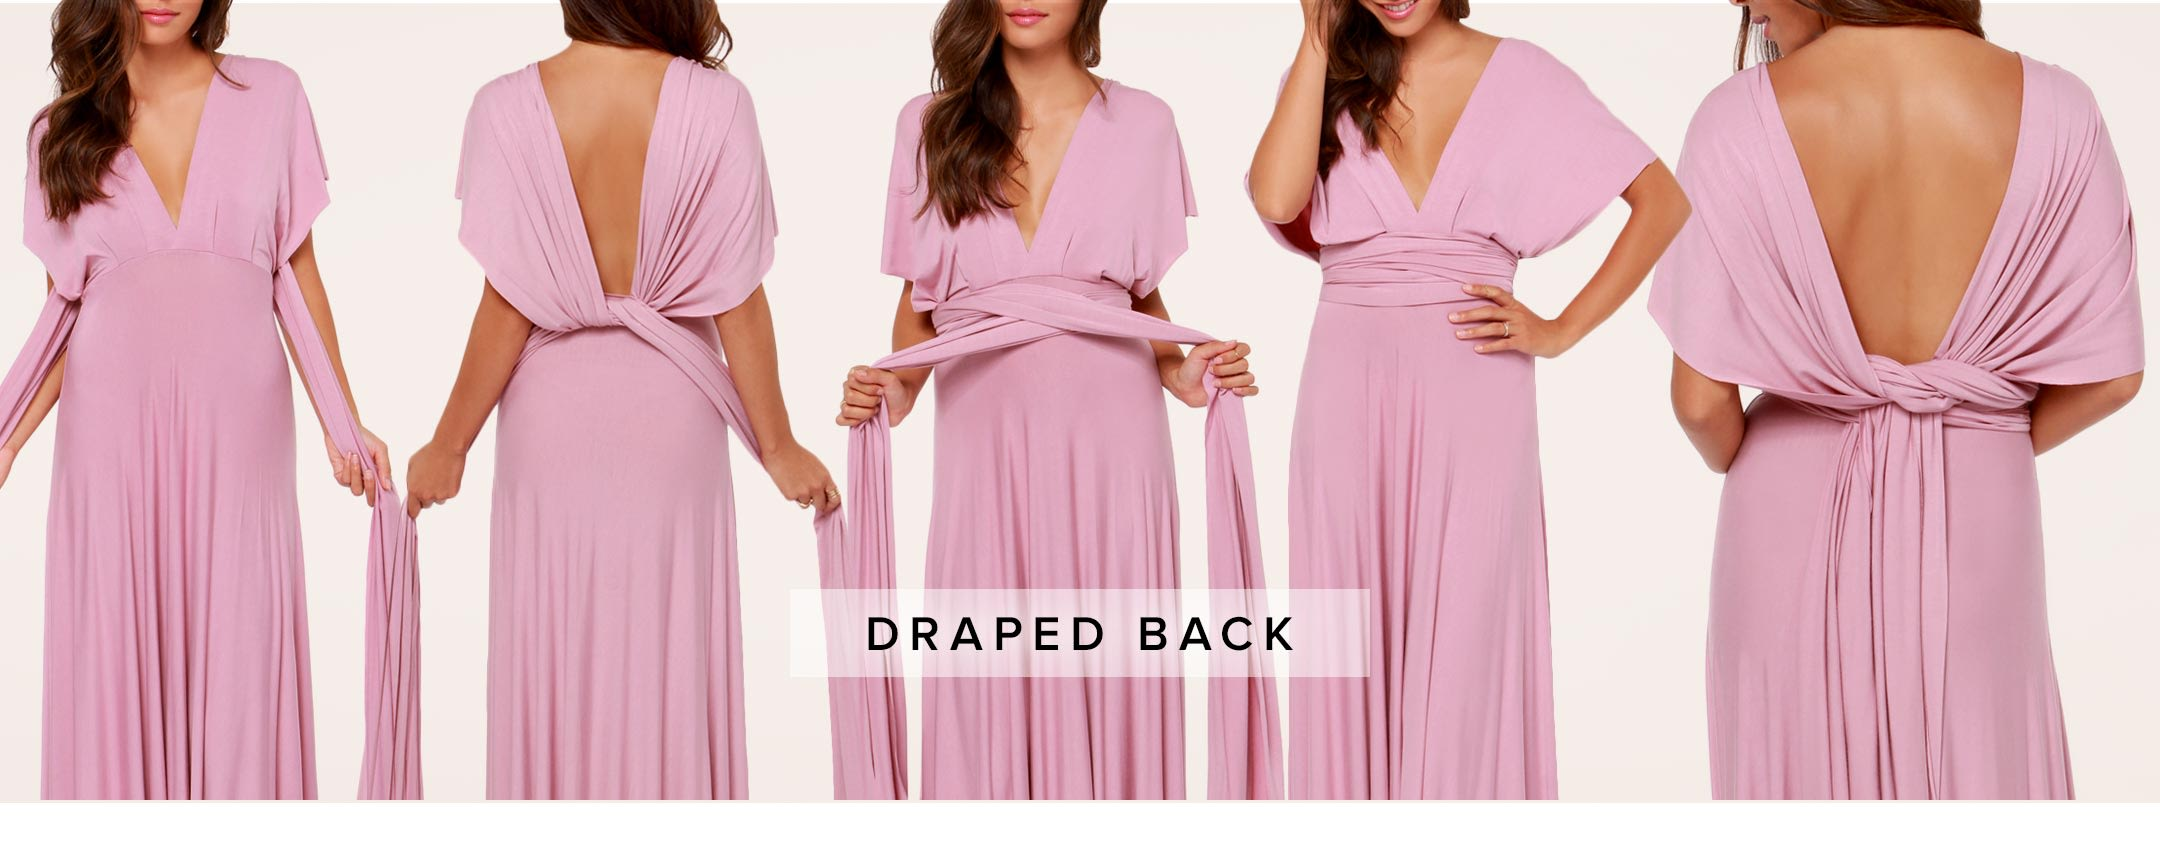 Tricks of the Trade: Wrap Dress Tutorial - Part II - Lulus.com ...